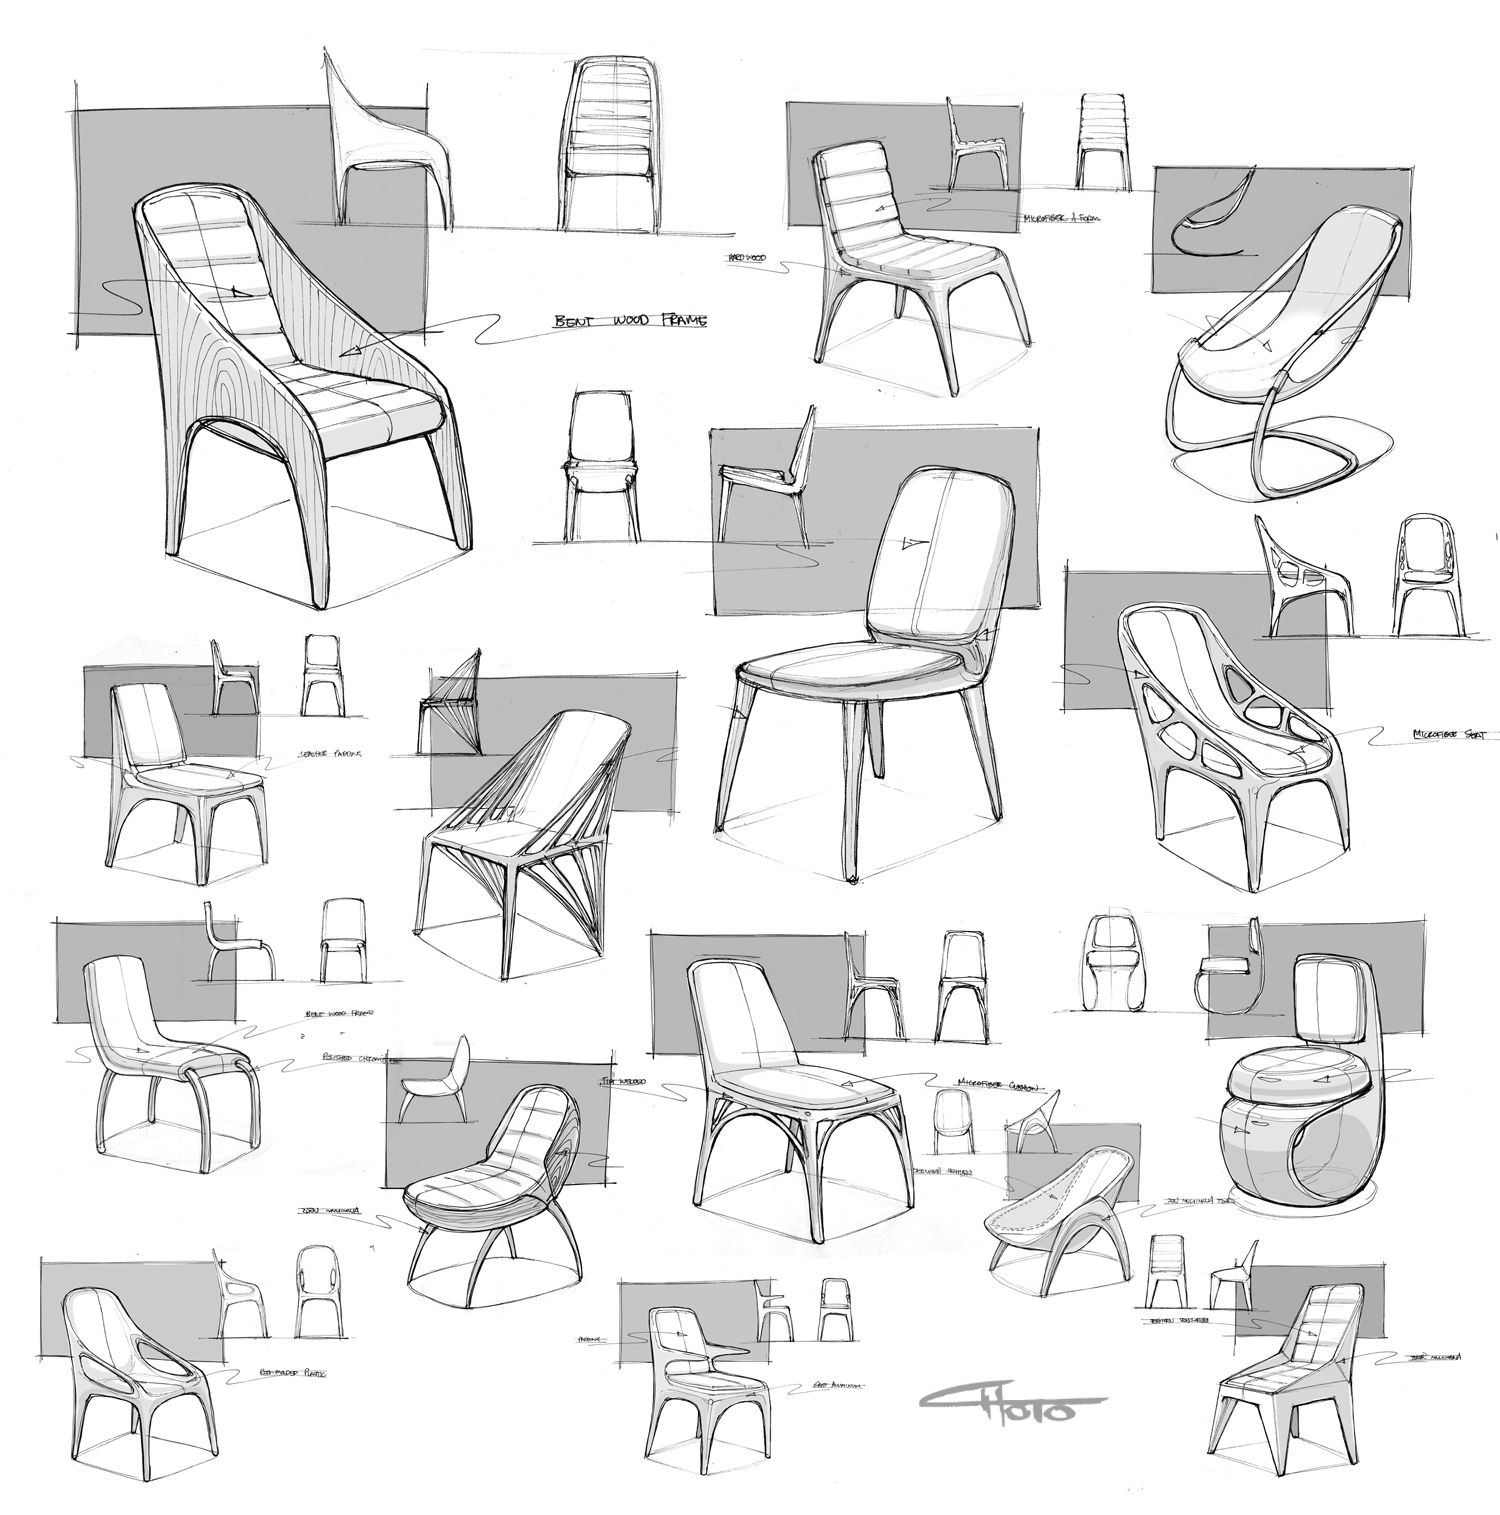 Furniture Sketches Matthew Choto On Id Sketching Skrzywak Pinterest Sketches